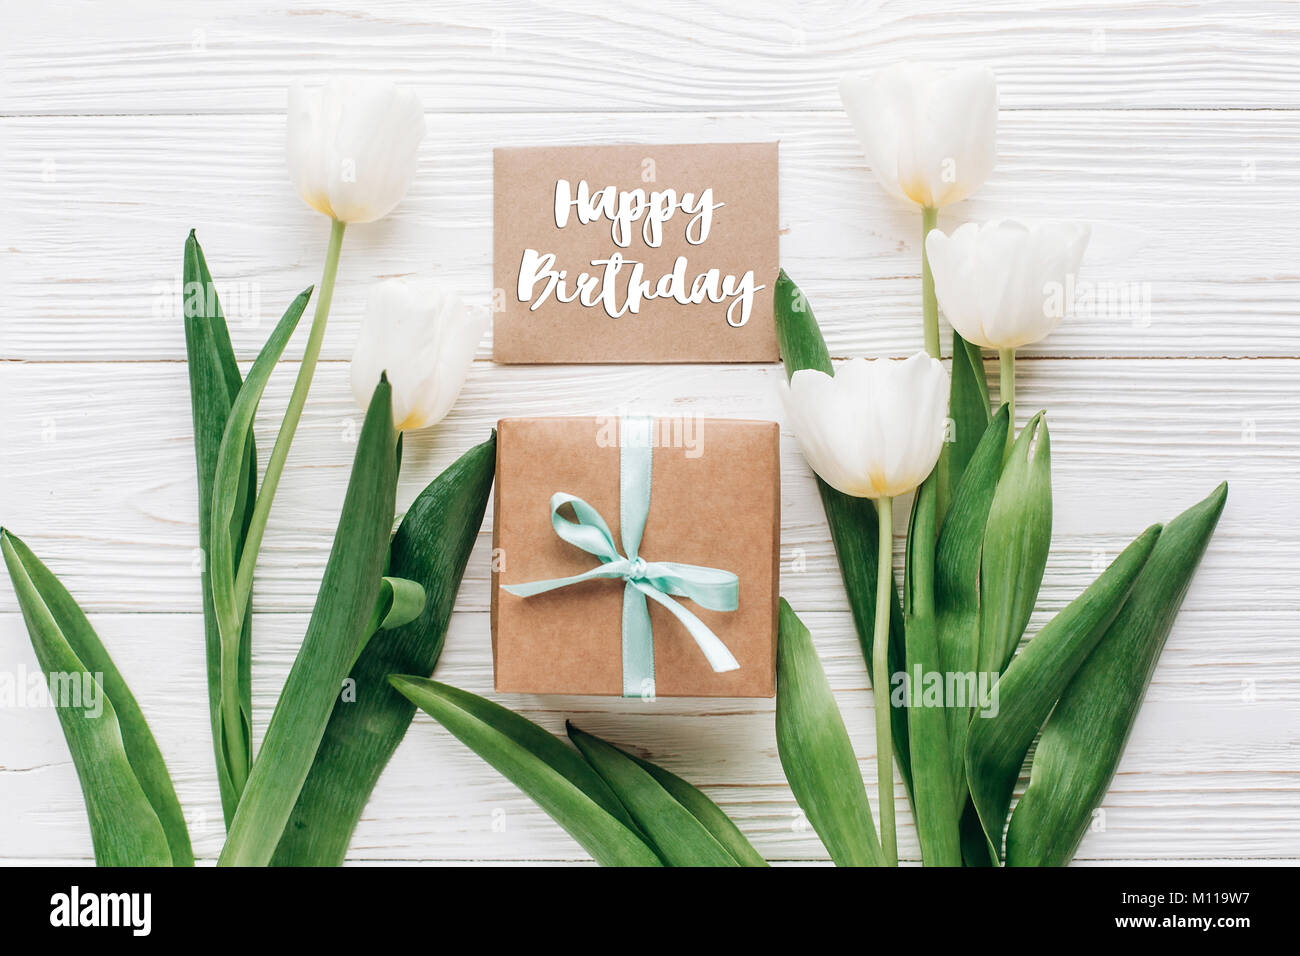 Happy Birthday Text Sign On Greeting Card With Stylish Present Box And Tulips White Wooden Rustic Background Flat Lay Mock Up Flowers Emp